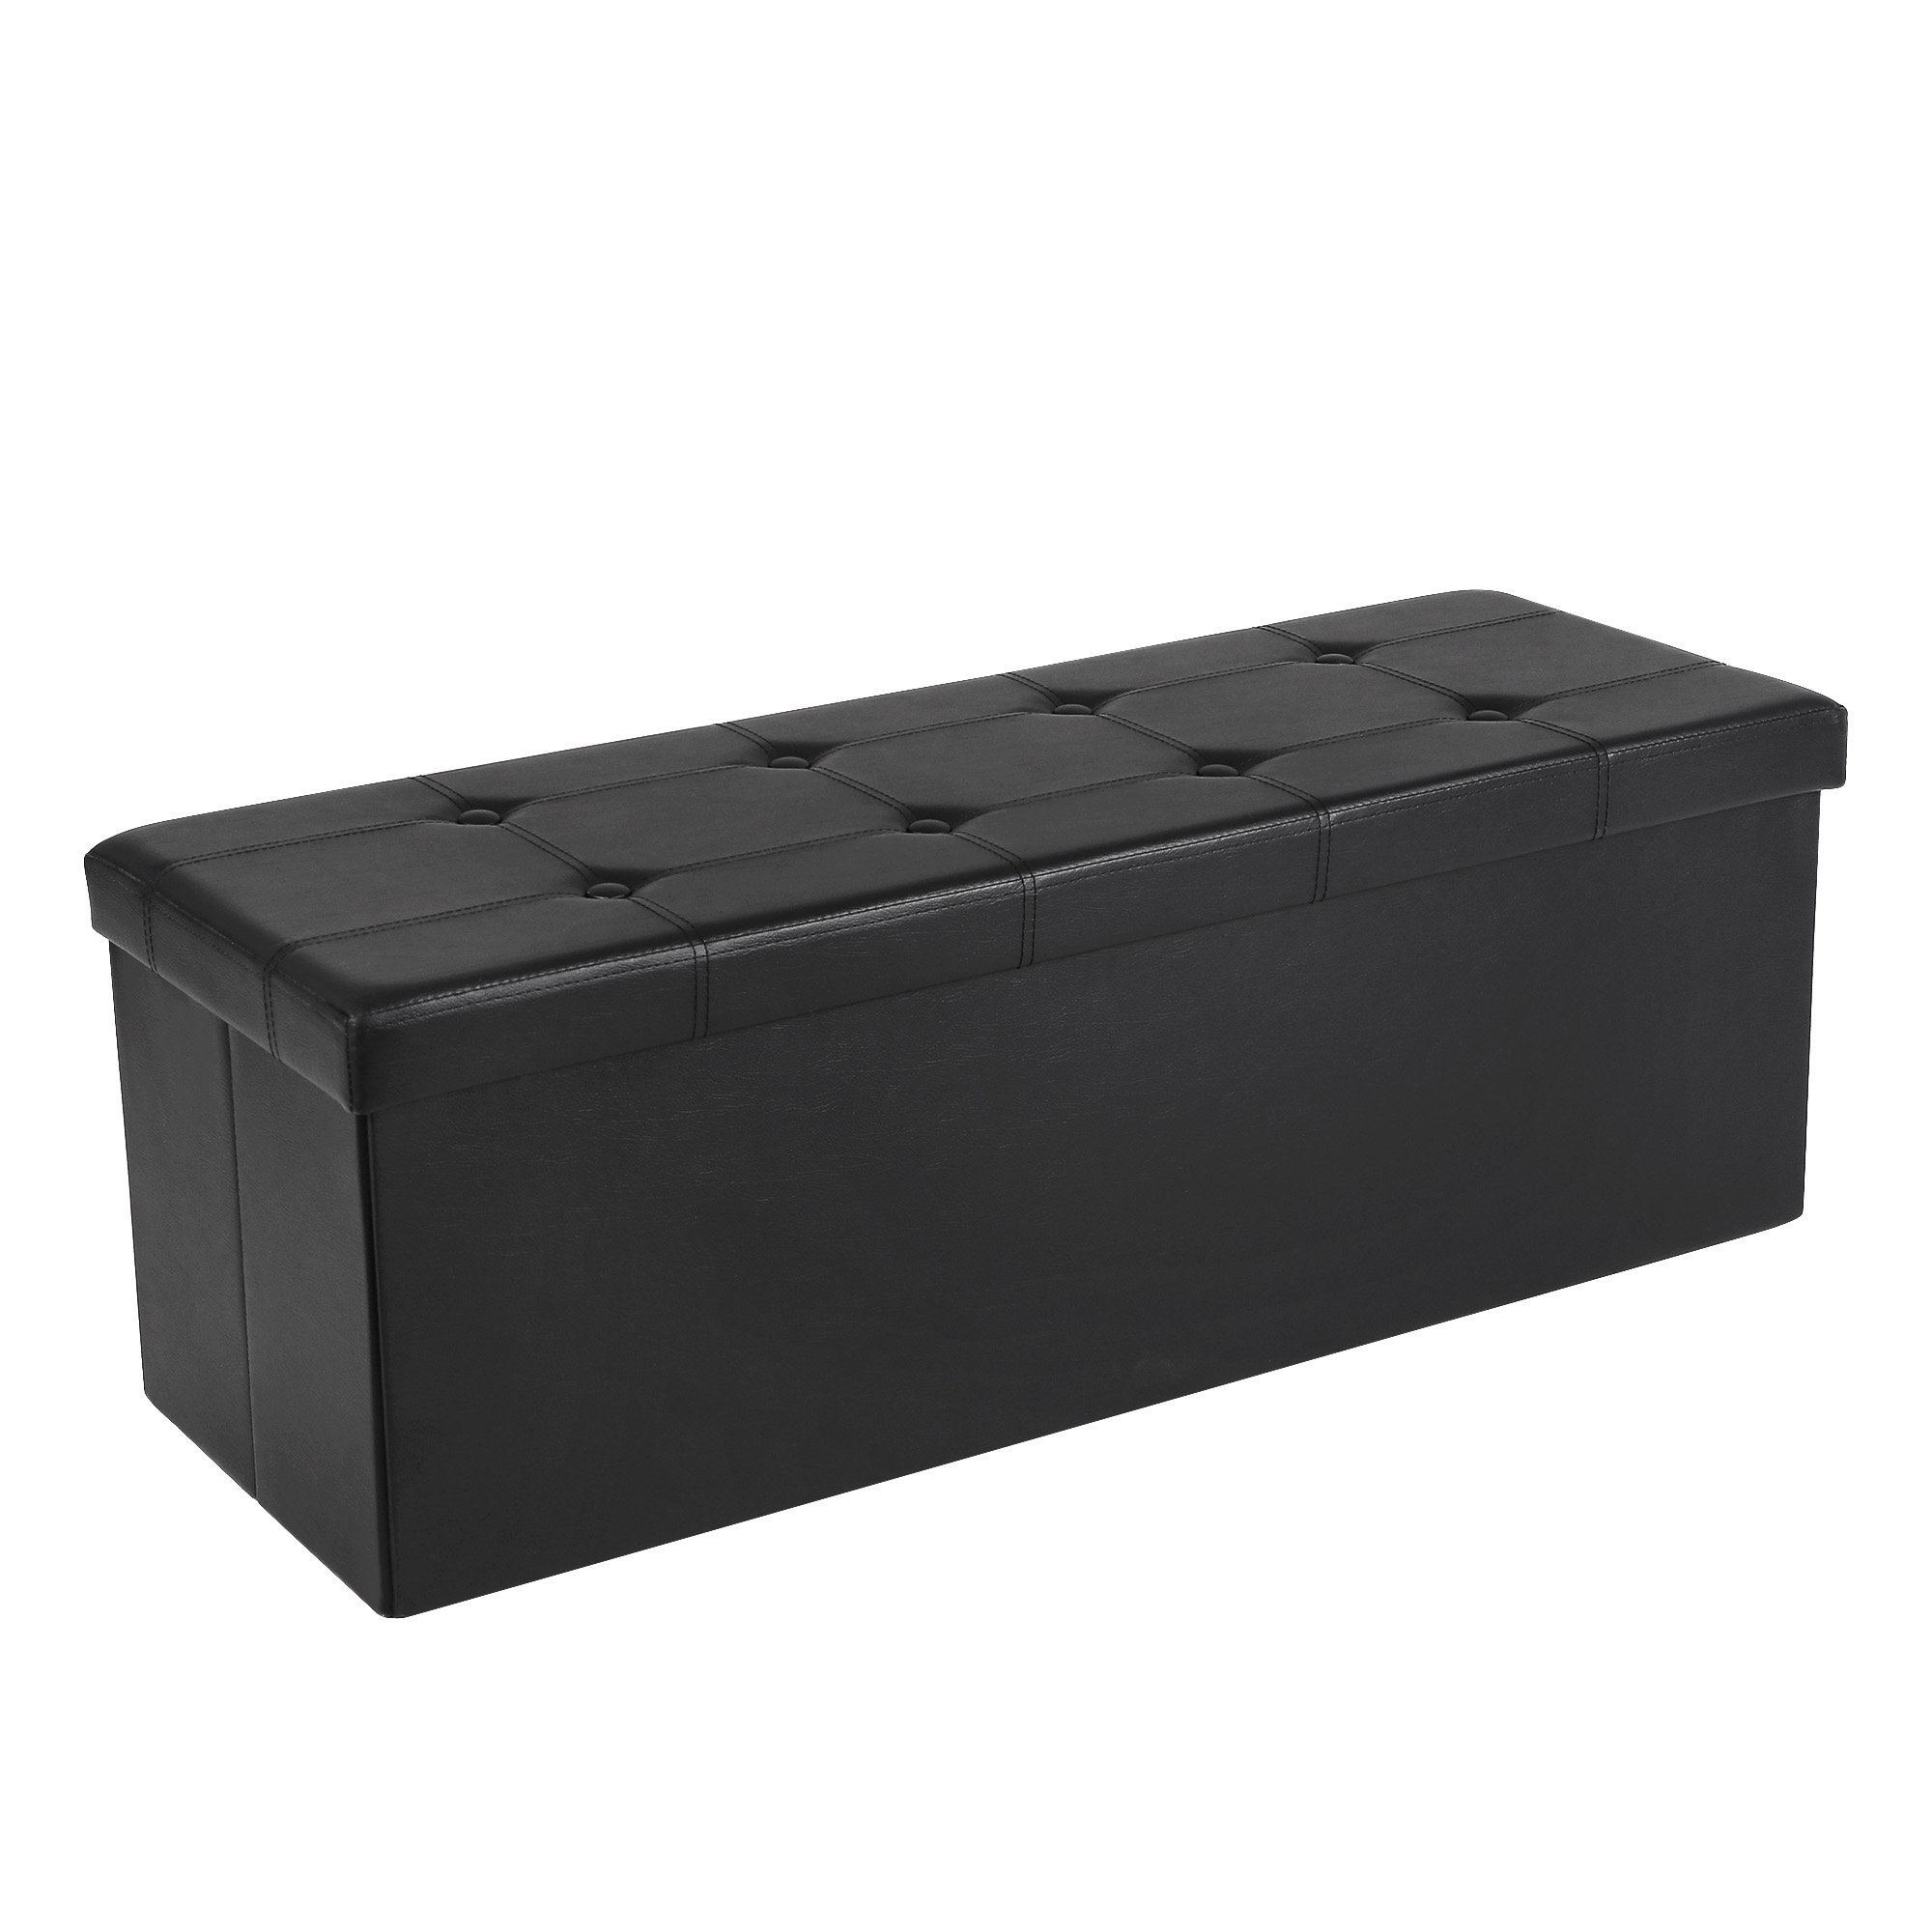 SONGMICS 43 Inches Folding Storage Ottoman Bench, Storage Chest Footrest Padded Seat, Faux Leather, Black ULSF701 by SONGMICS